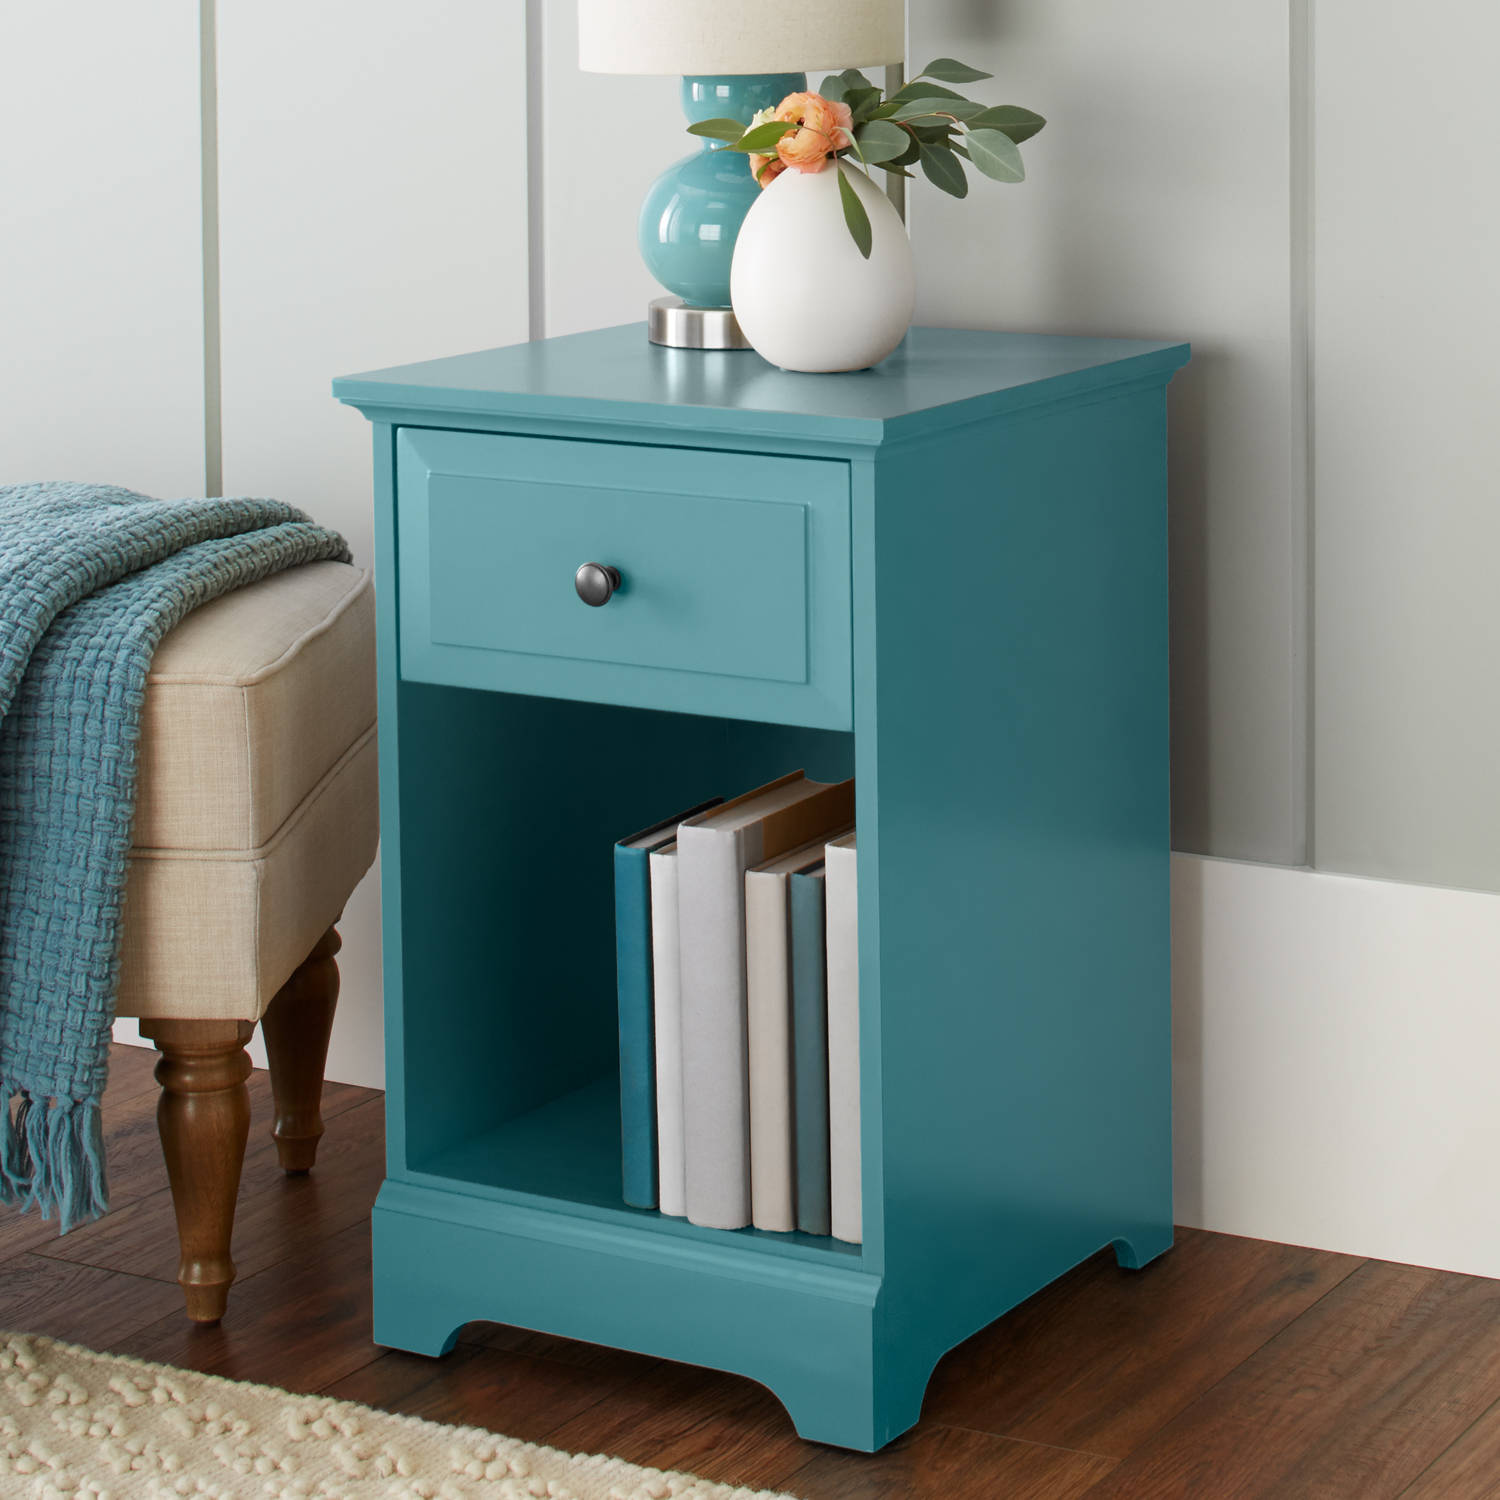 better homes gardens savannah accent table teal end lamp ideas hartwell sofa ethan allen oak laura ashley breakfast bar black bedroom tall with drawer and chairs behind couch